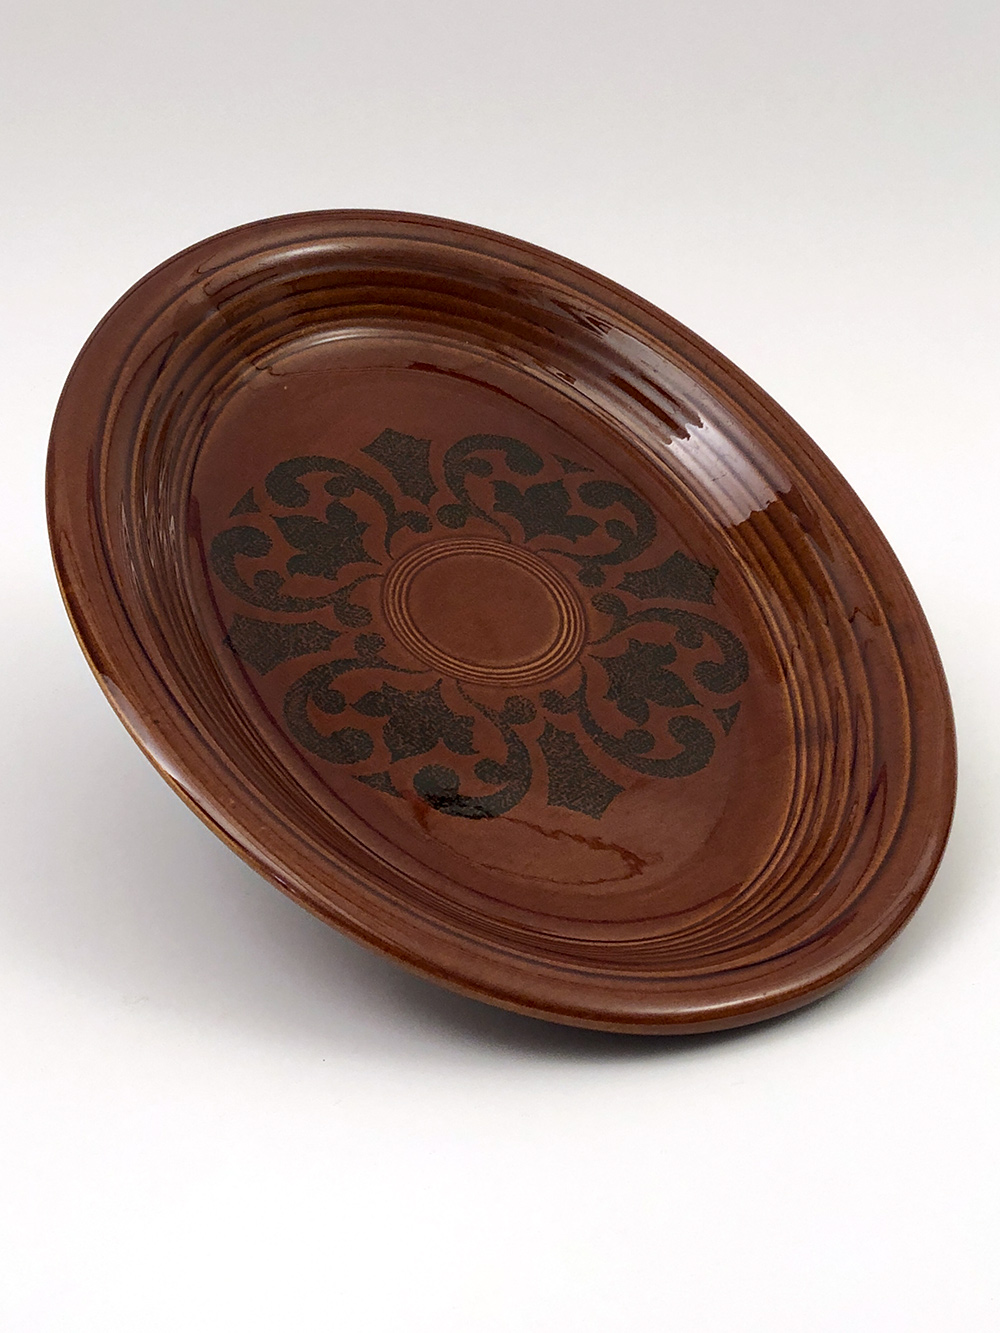 fiesta ironstone platter in amberstone dark brown